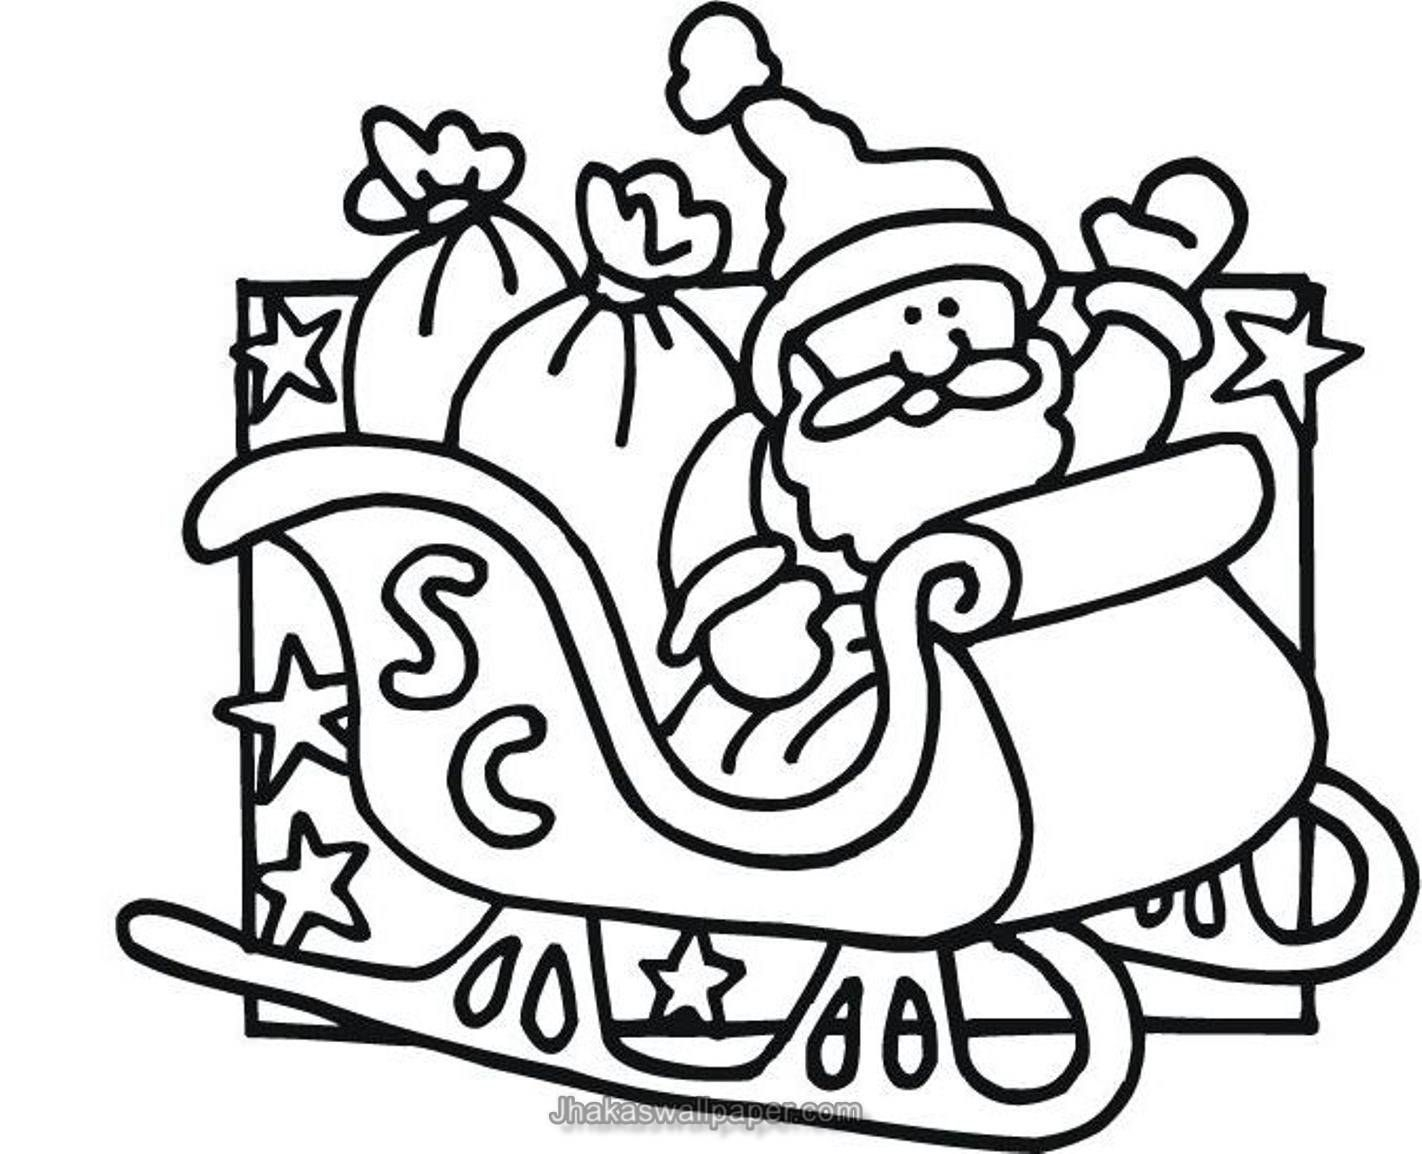 Santa Claus Coloring Worksheets With Pages To